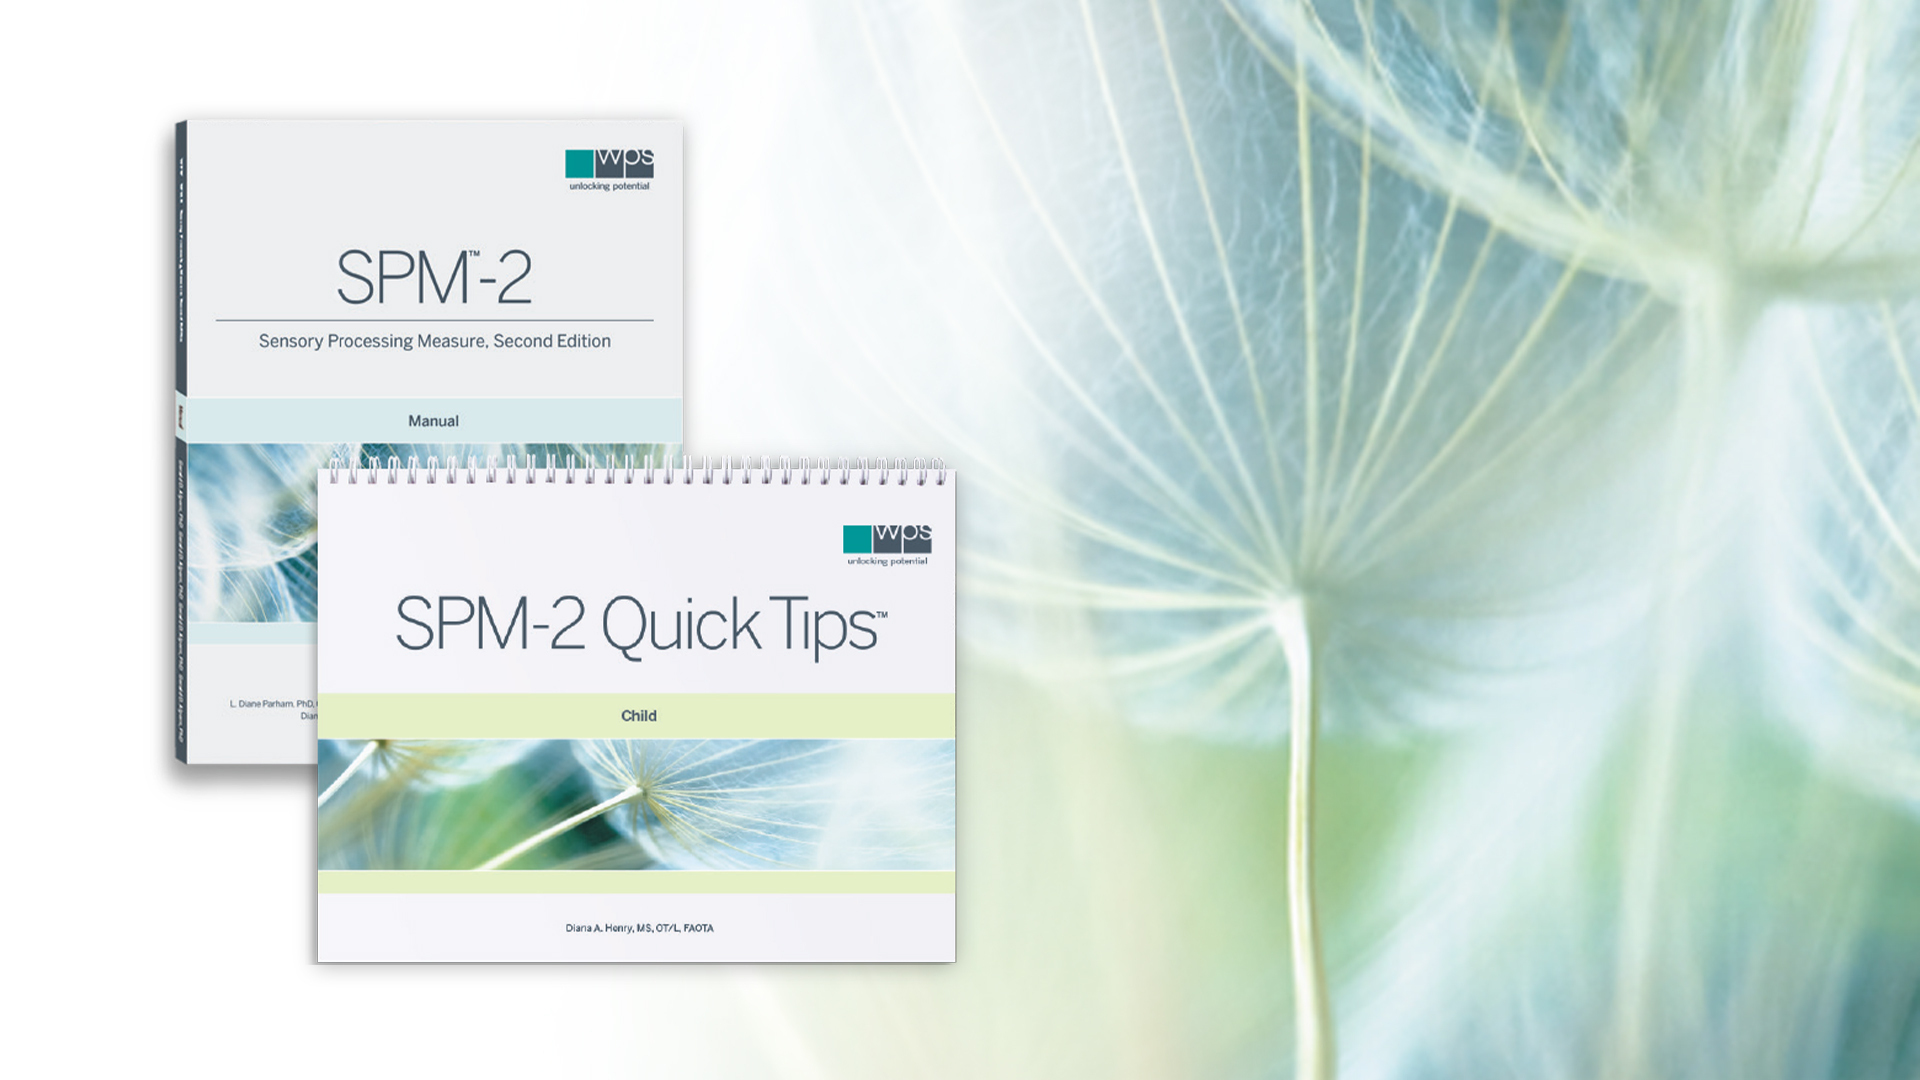 Behind the Scenes of the SPM-2 Assessment & SPM-2 Quick Tips